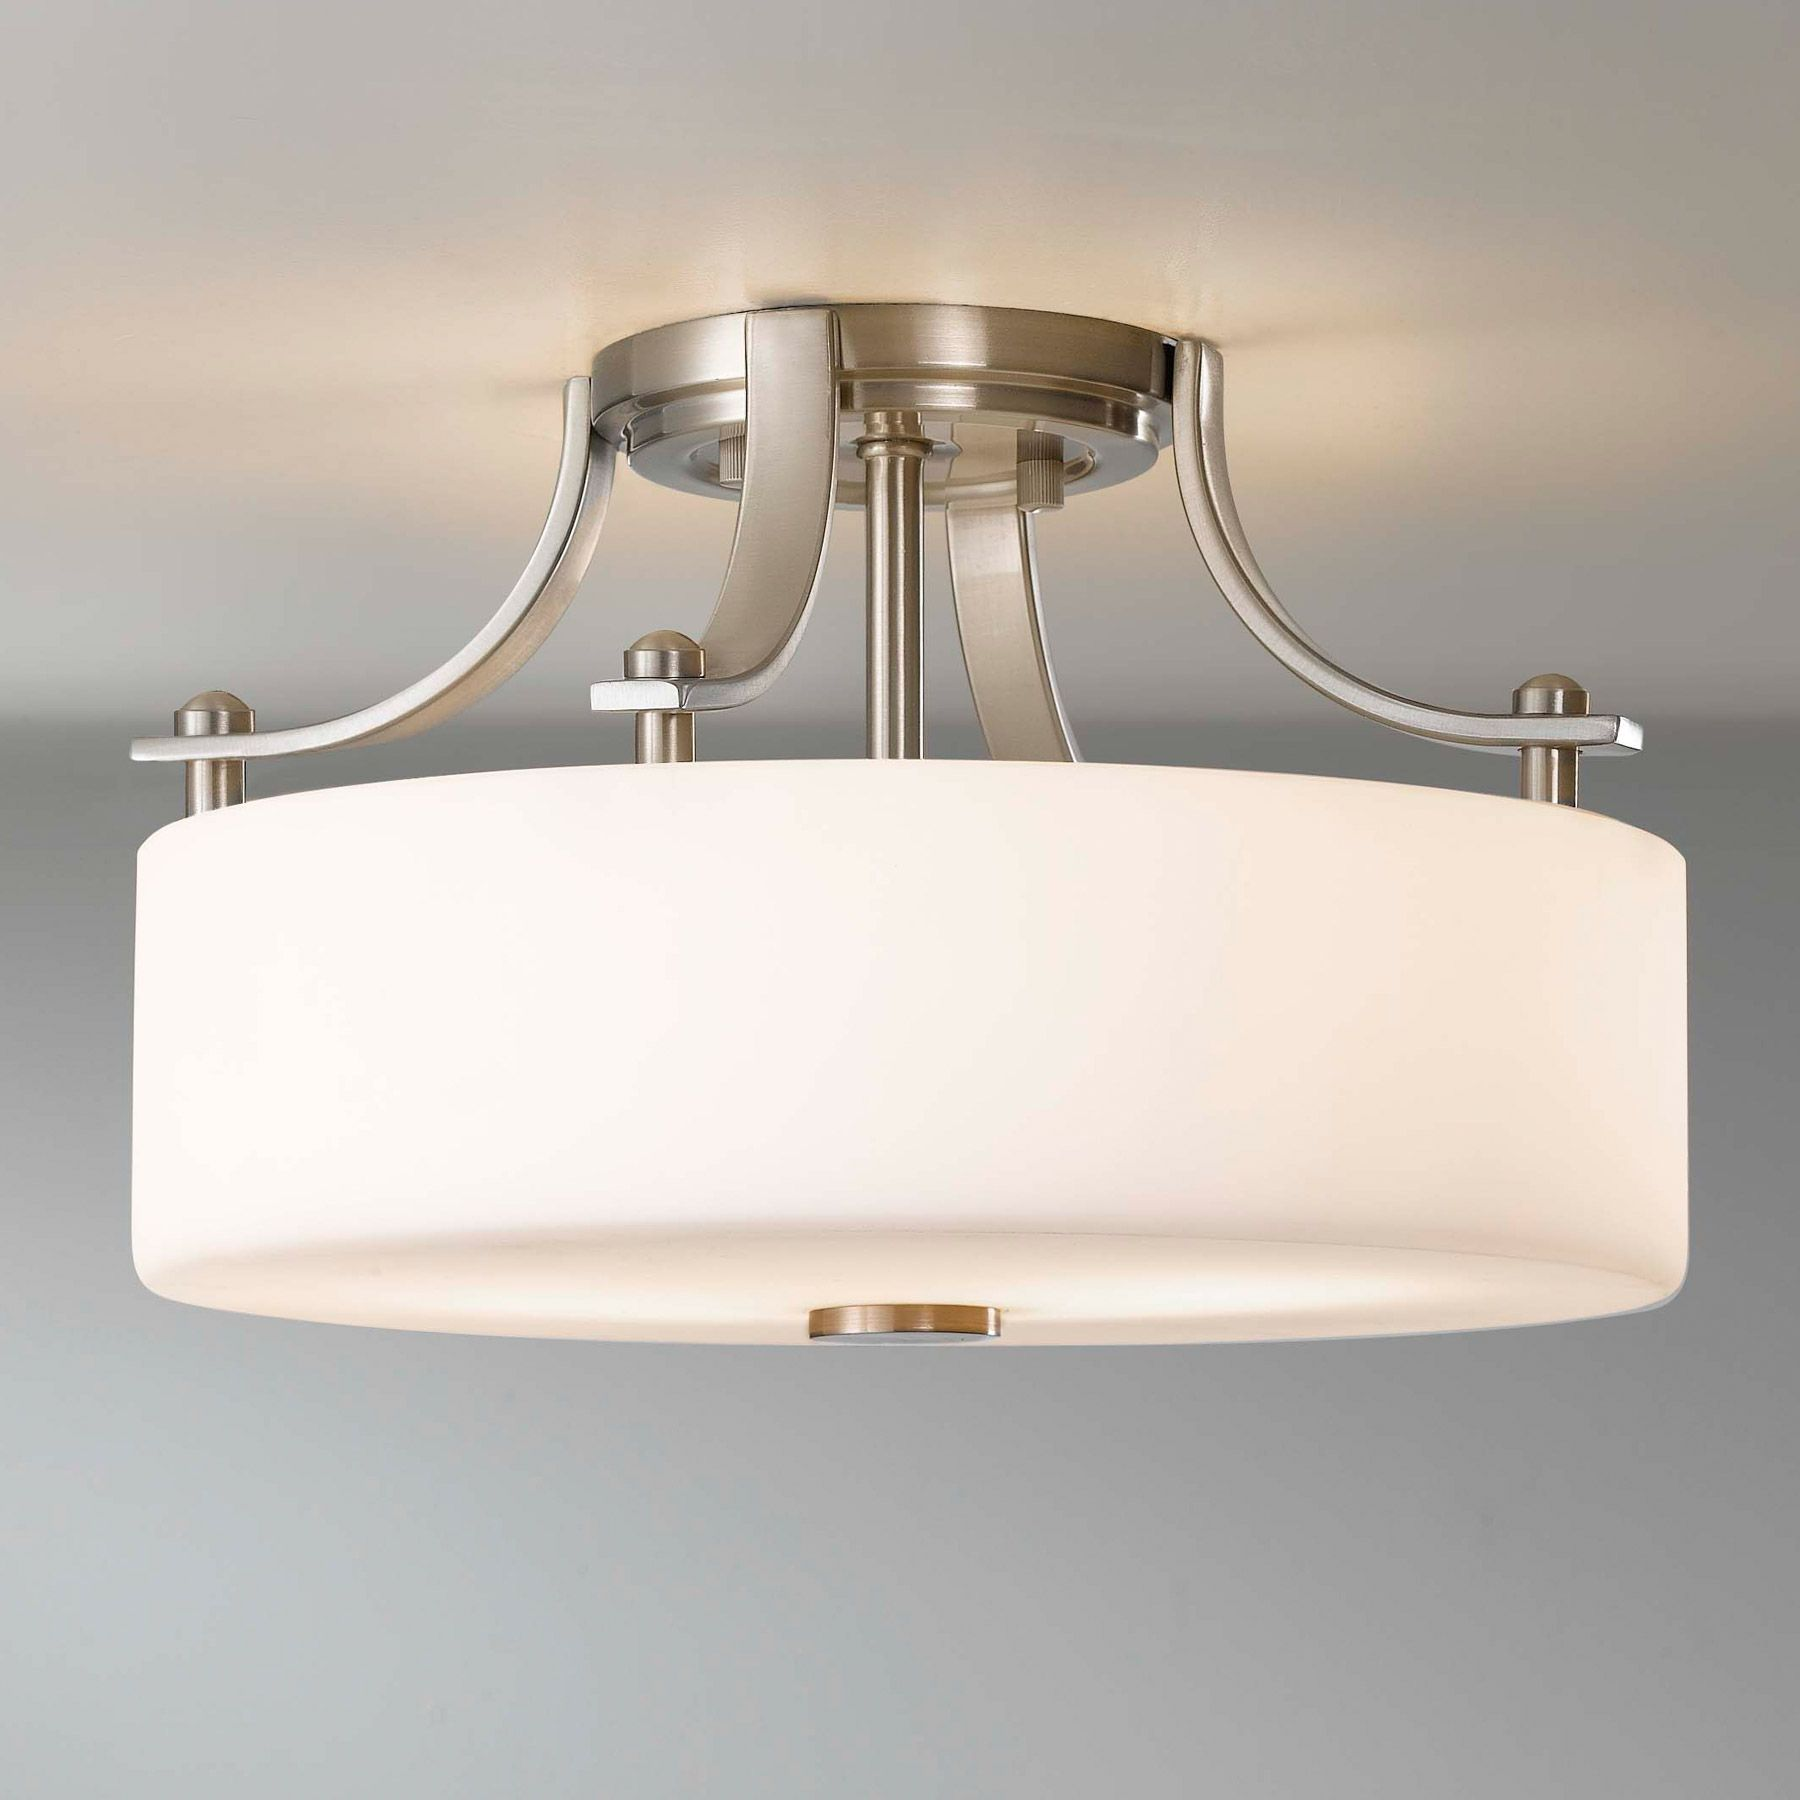 flush mount kitchen lighting White FlushMount Light Fixture